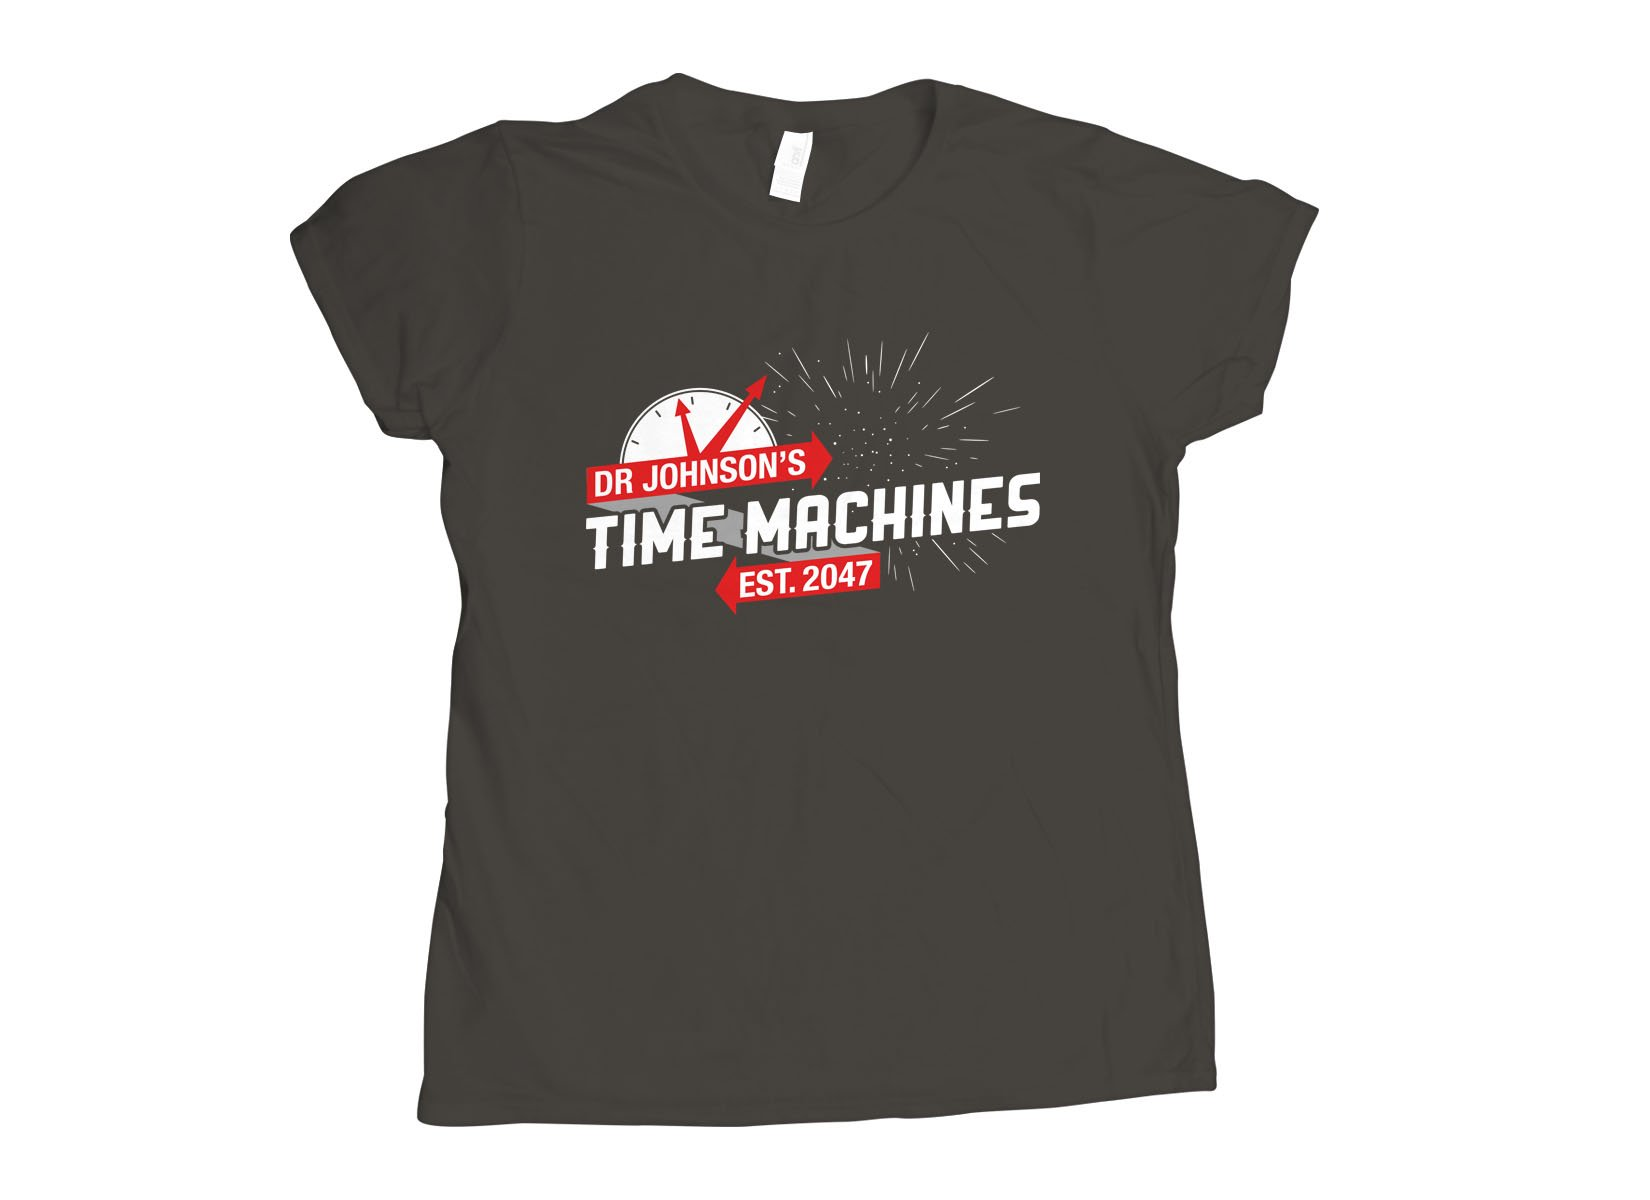 Dr Johnson's Time Machines on Womens T-Shirt